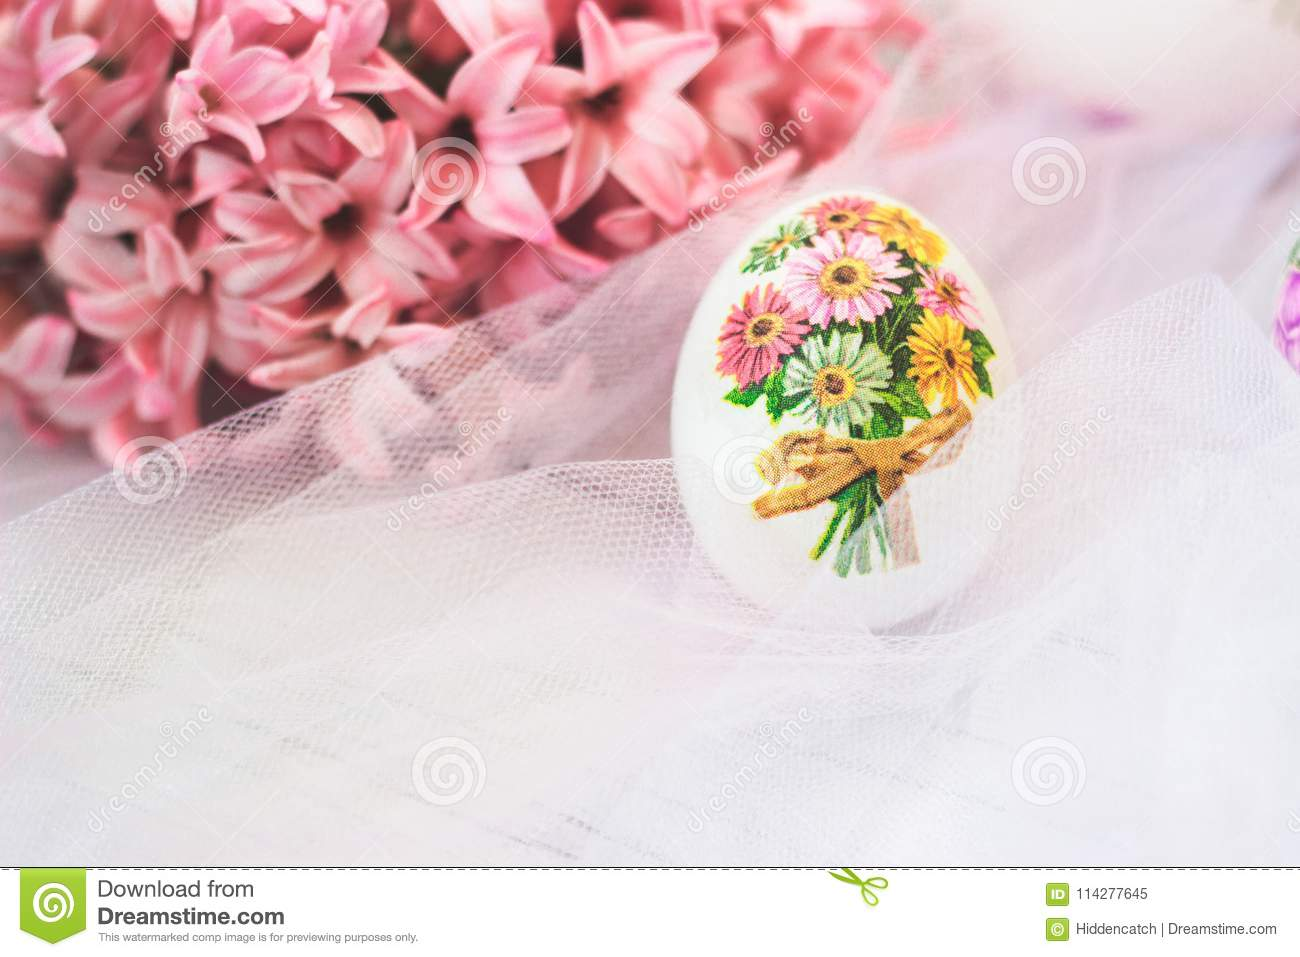 Decoupage decorated Easter egg, with pink hyacinths flowers, on